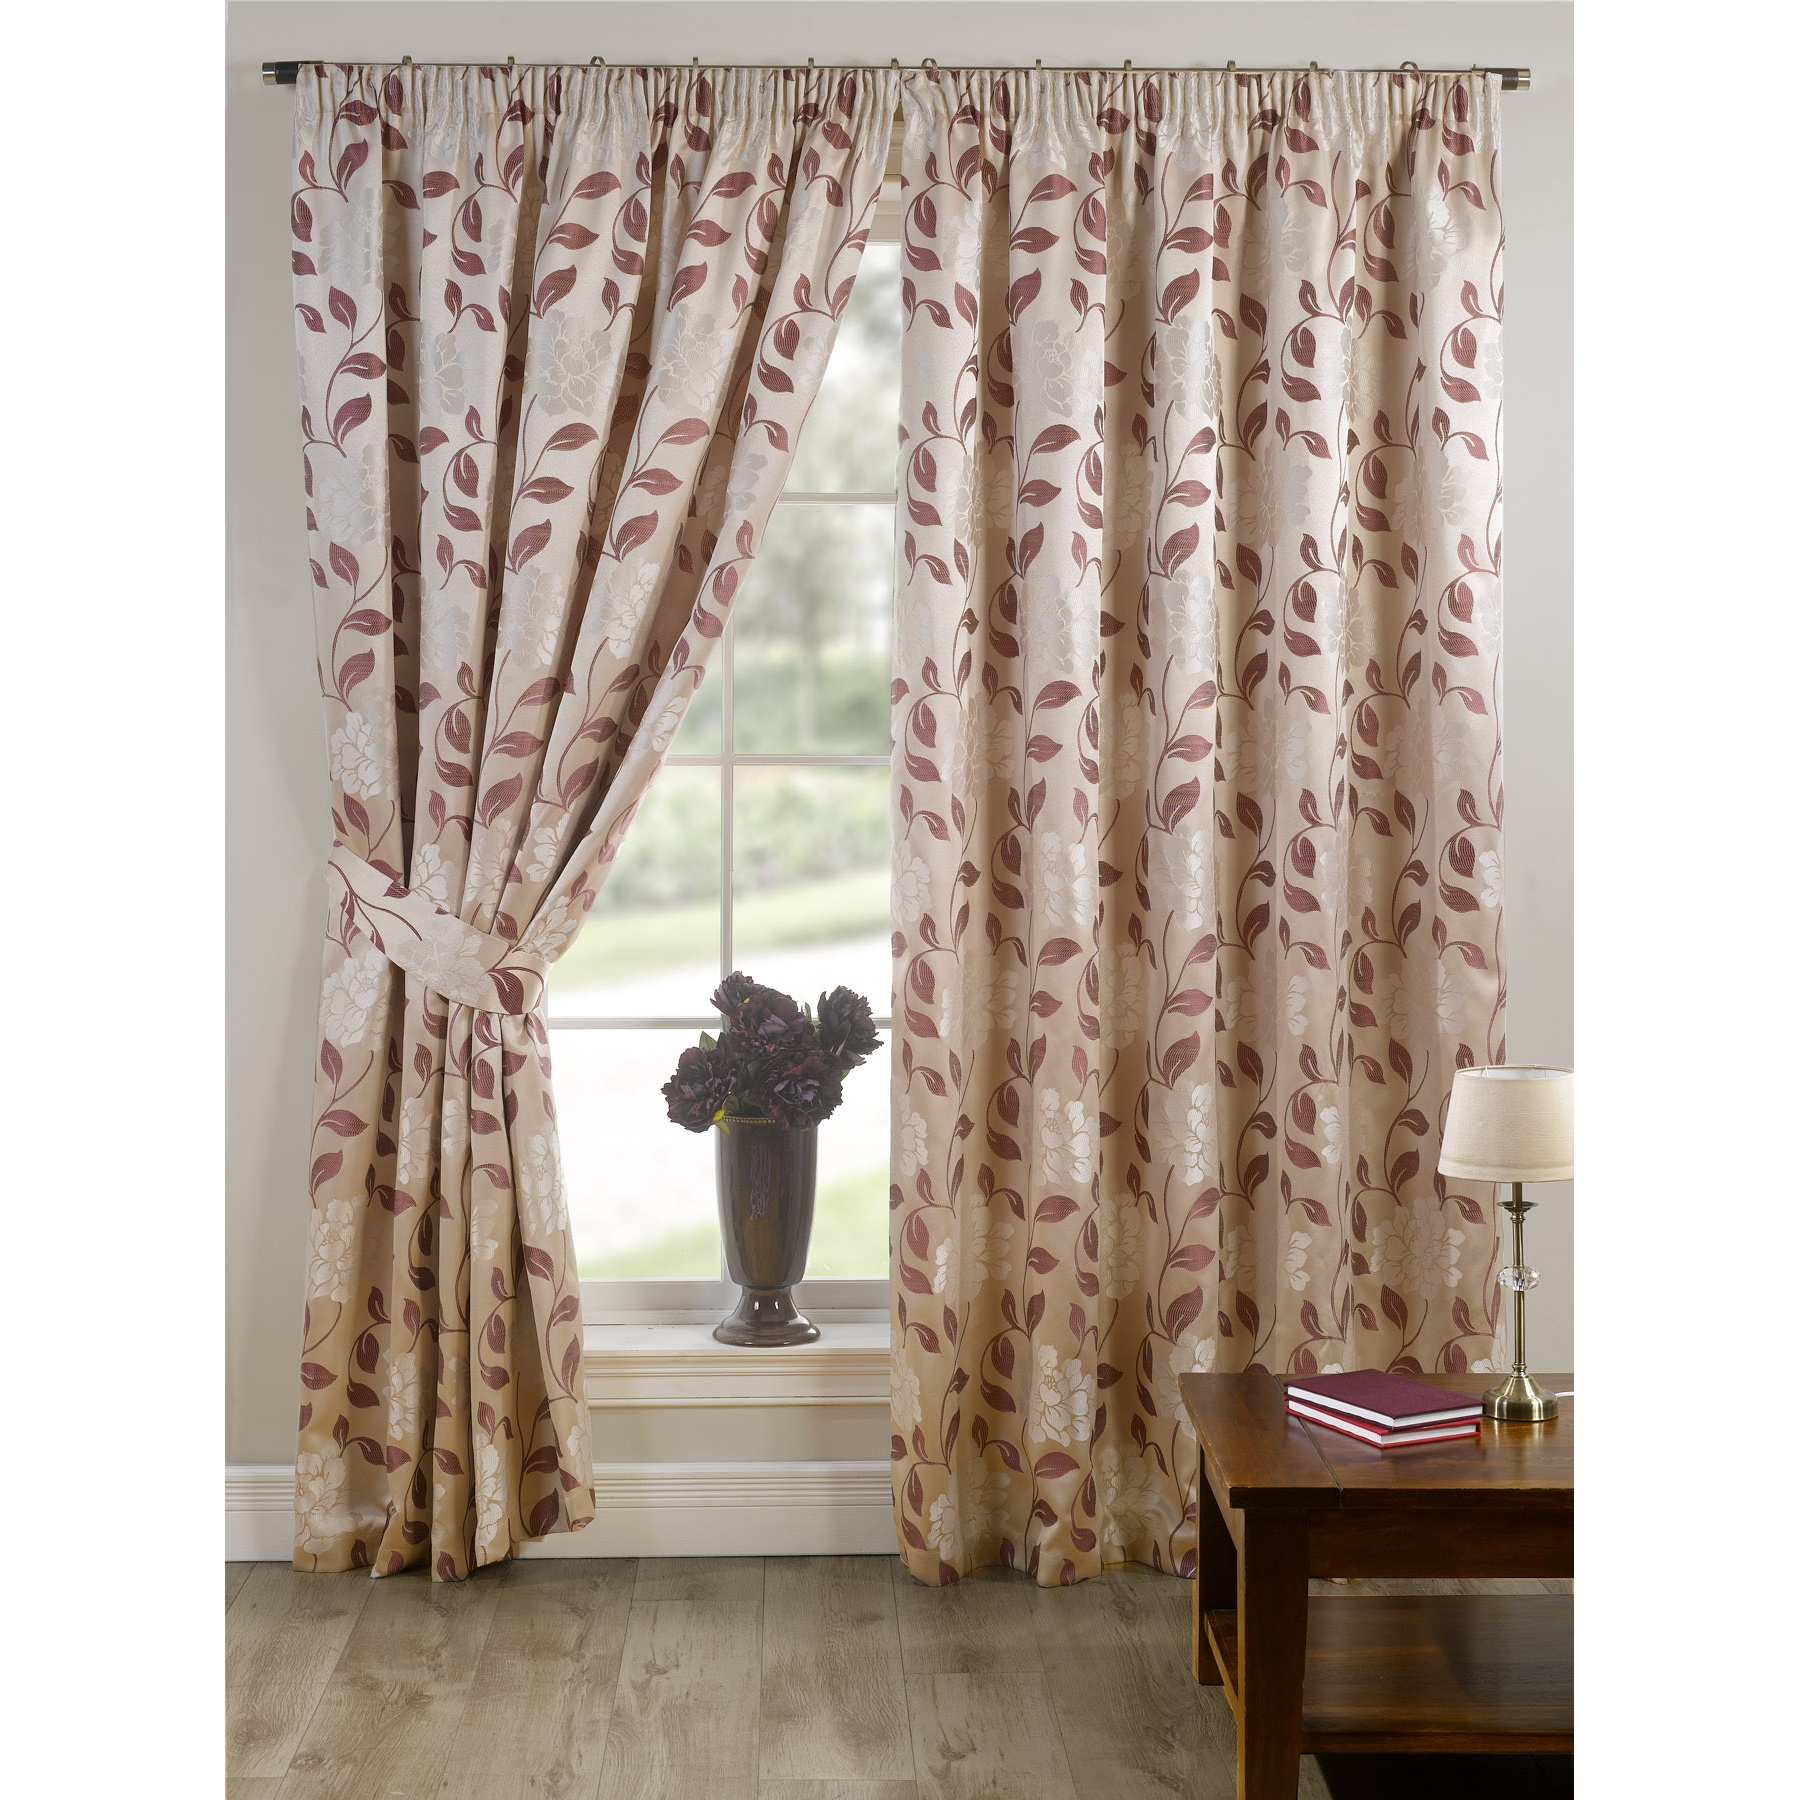 Drapes and curtains seattle - About davina fully lined ready made floral patterned curtains drapes